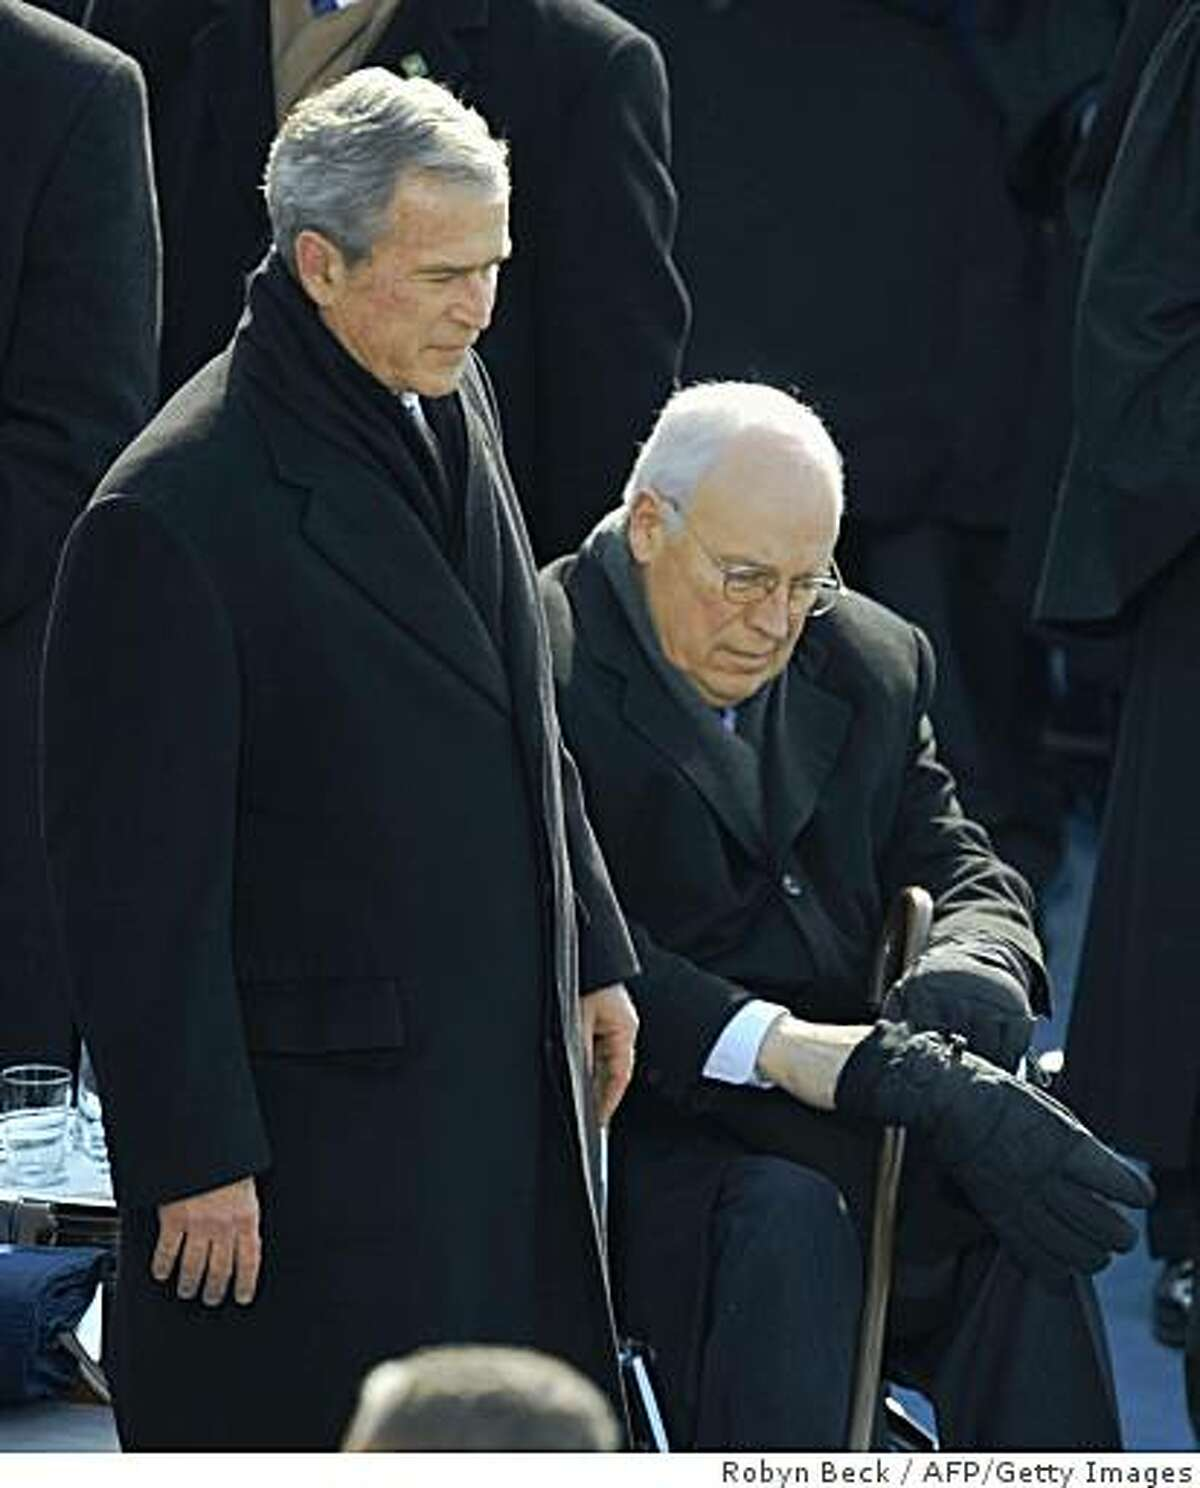 Outgoing US President George W. Bush stands beside a wheelchair-bound US Vice President Dick Cheney prior to the inauguration of Barack Obama.